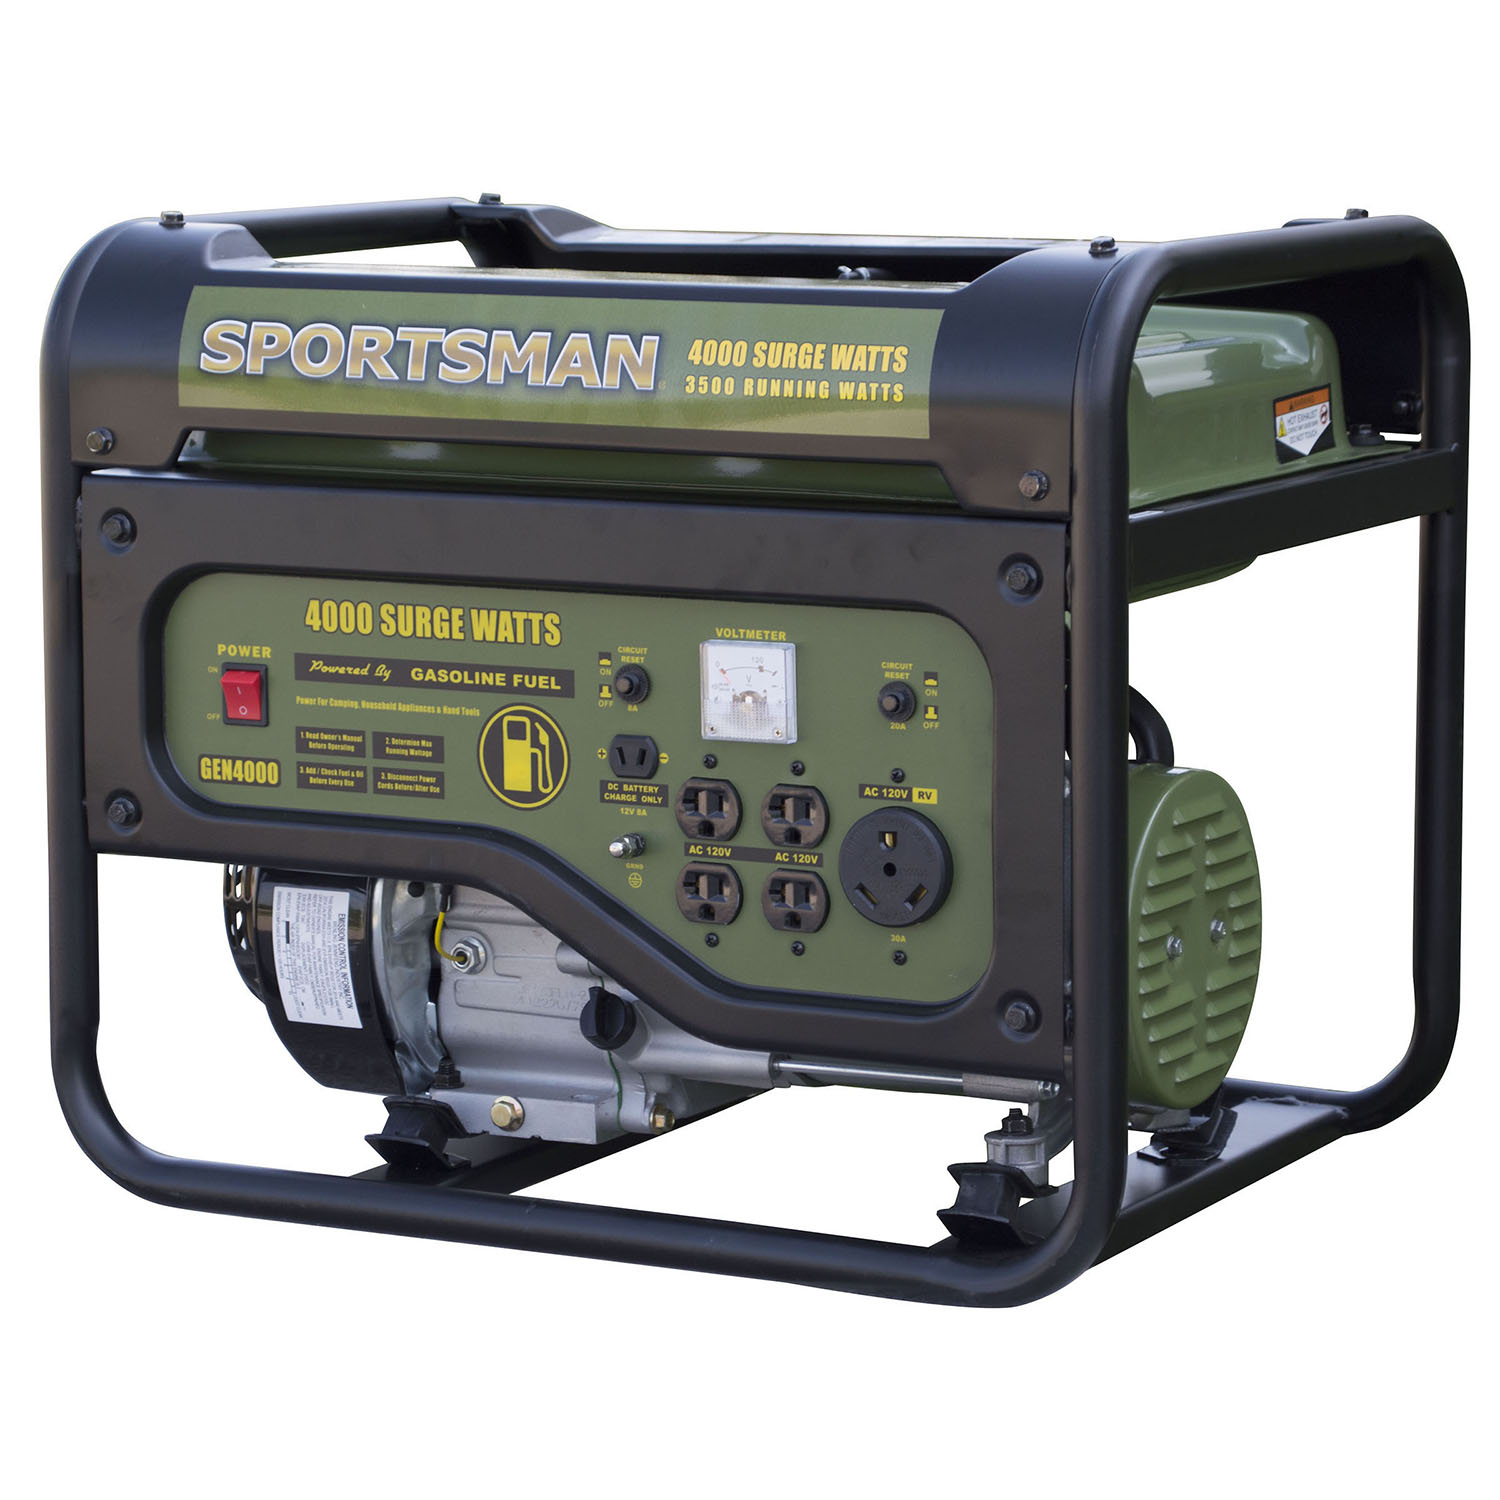 worksheet Generator Wattage Worksheet sportsman 4000 surge watt gas generator 1 2 3